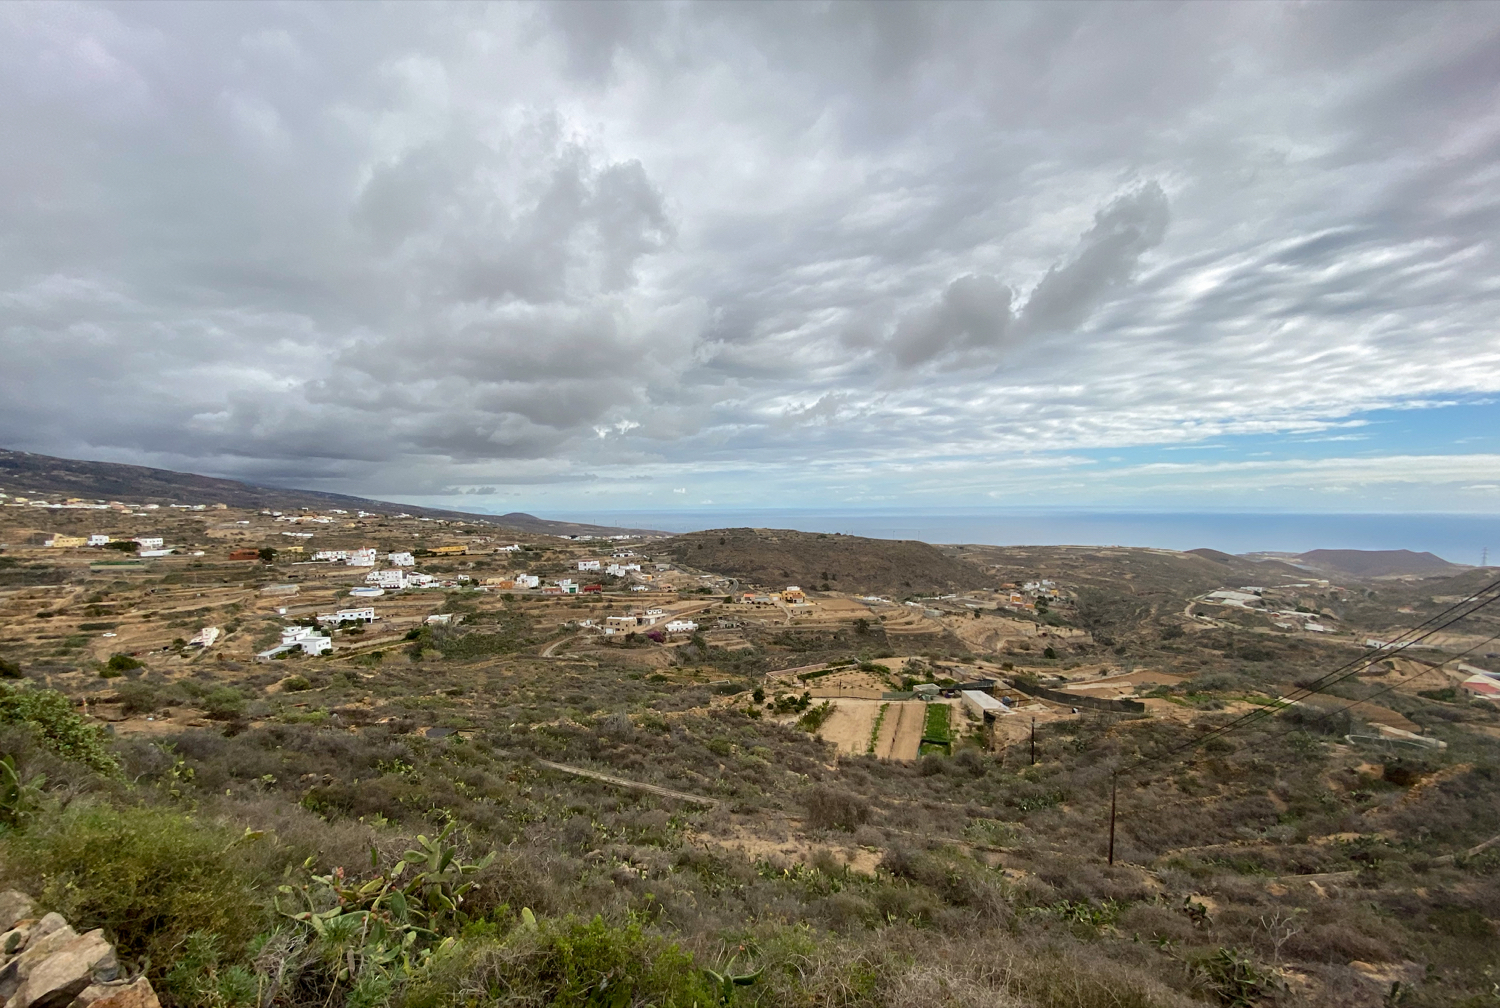 View from the heights to the east coast of Tenerife